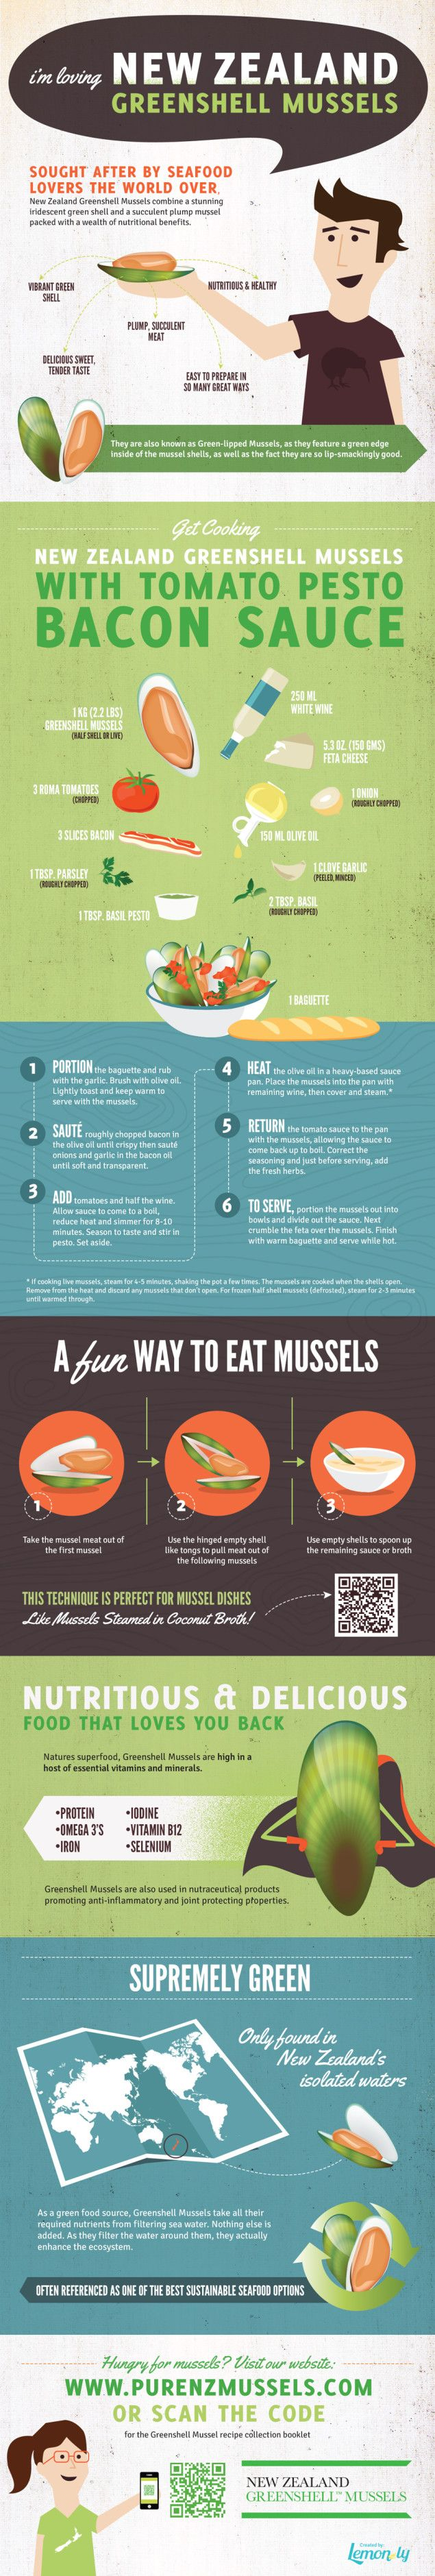 65 best nz infographic images on Pinterest   Info graphics, New ...